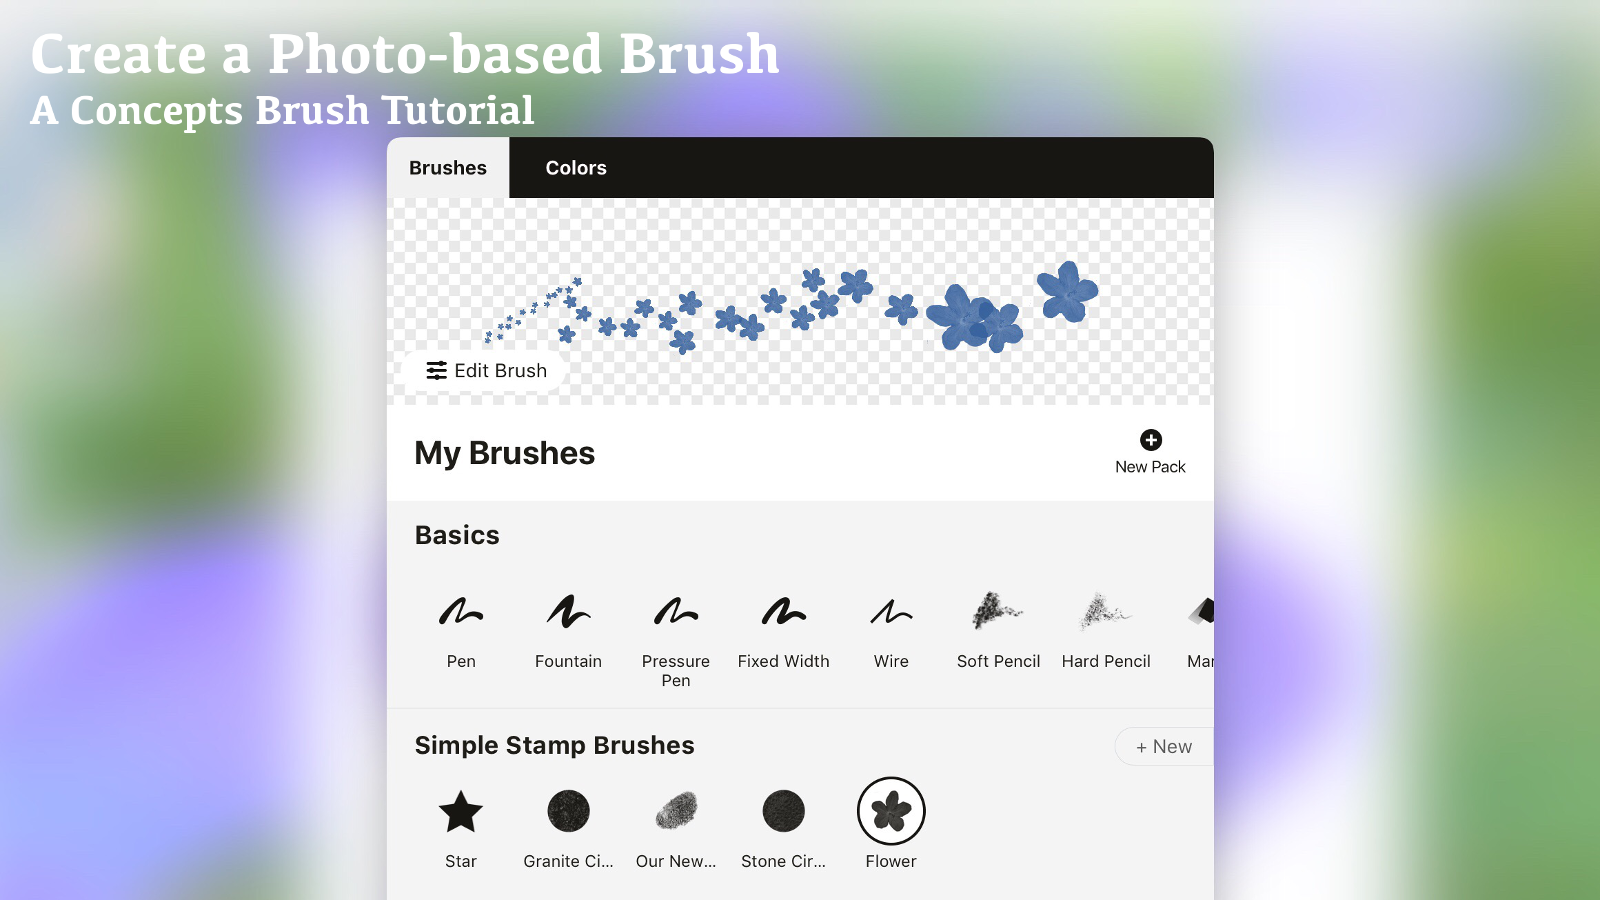 Create a Photo-based Brush tutorial